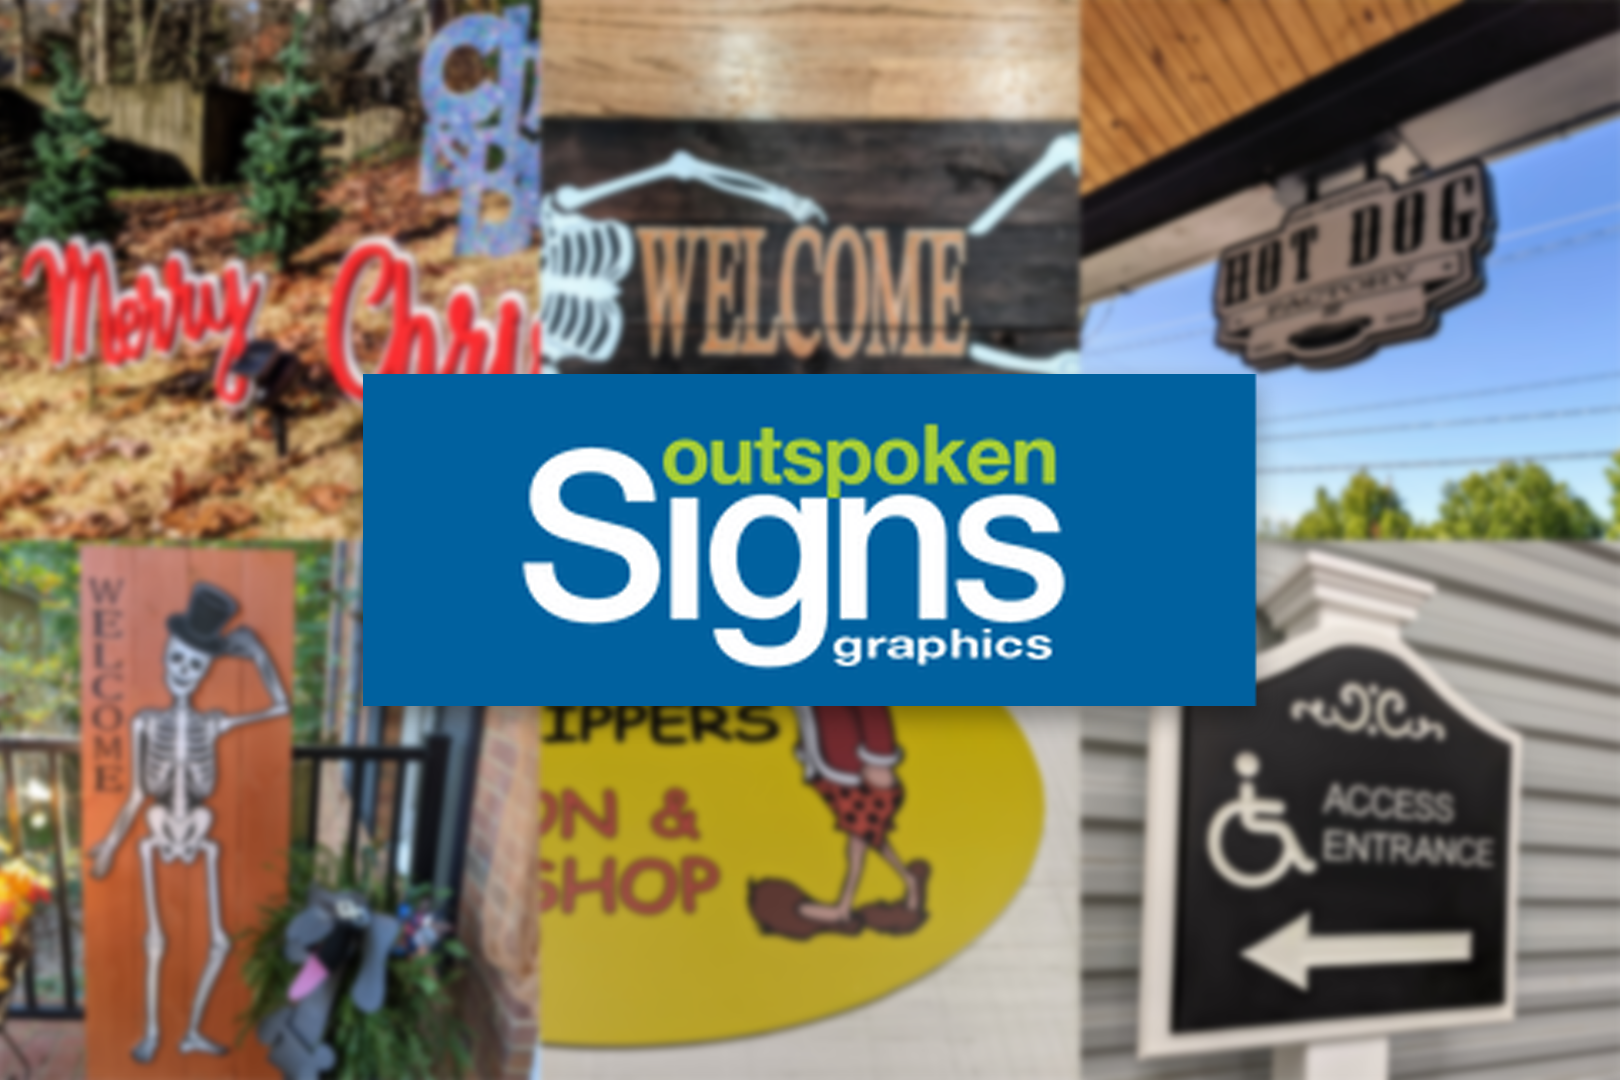 Outspoken Signs